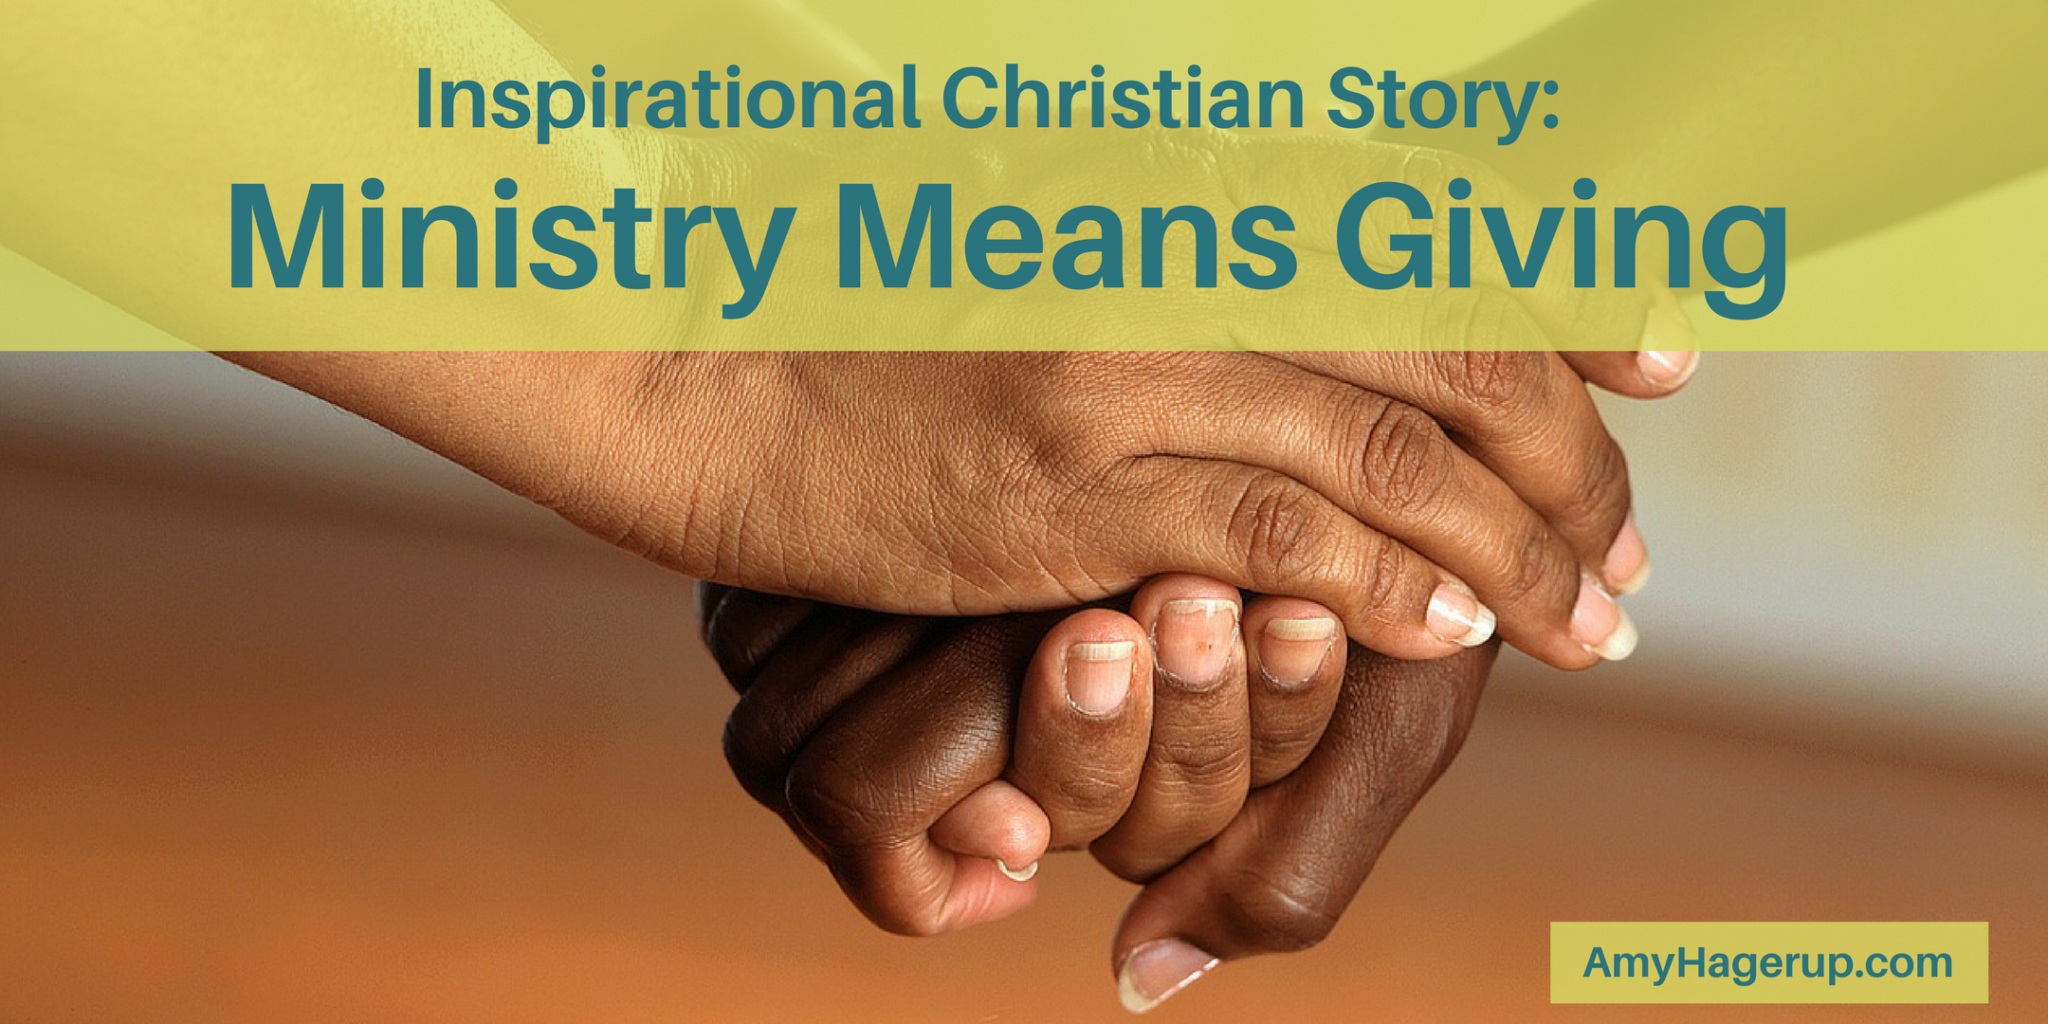 Here is an inspirational story about how ministry means giving to others like Jesus gave so freely to us.